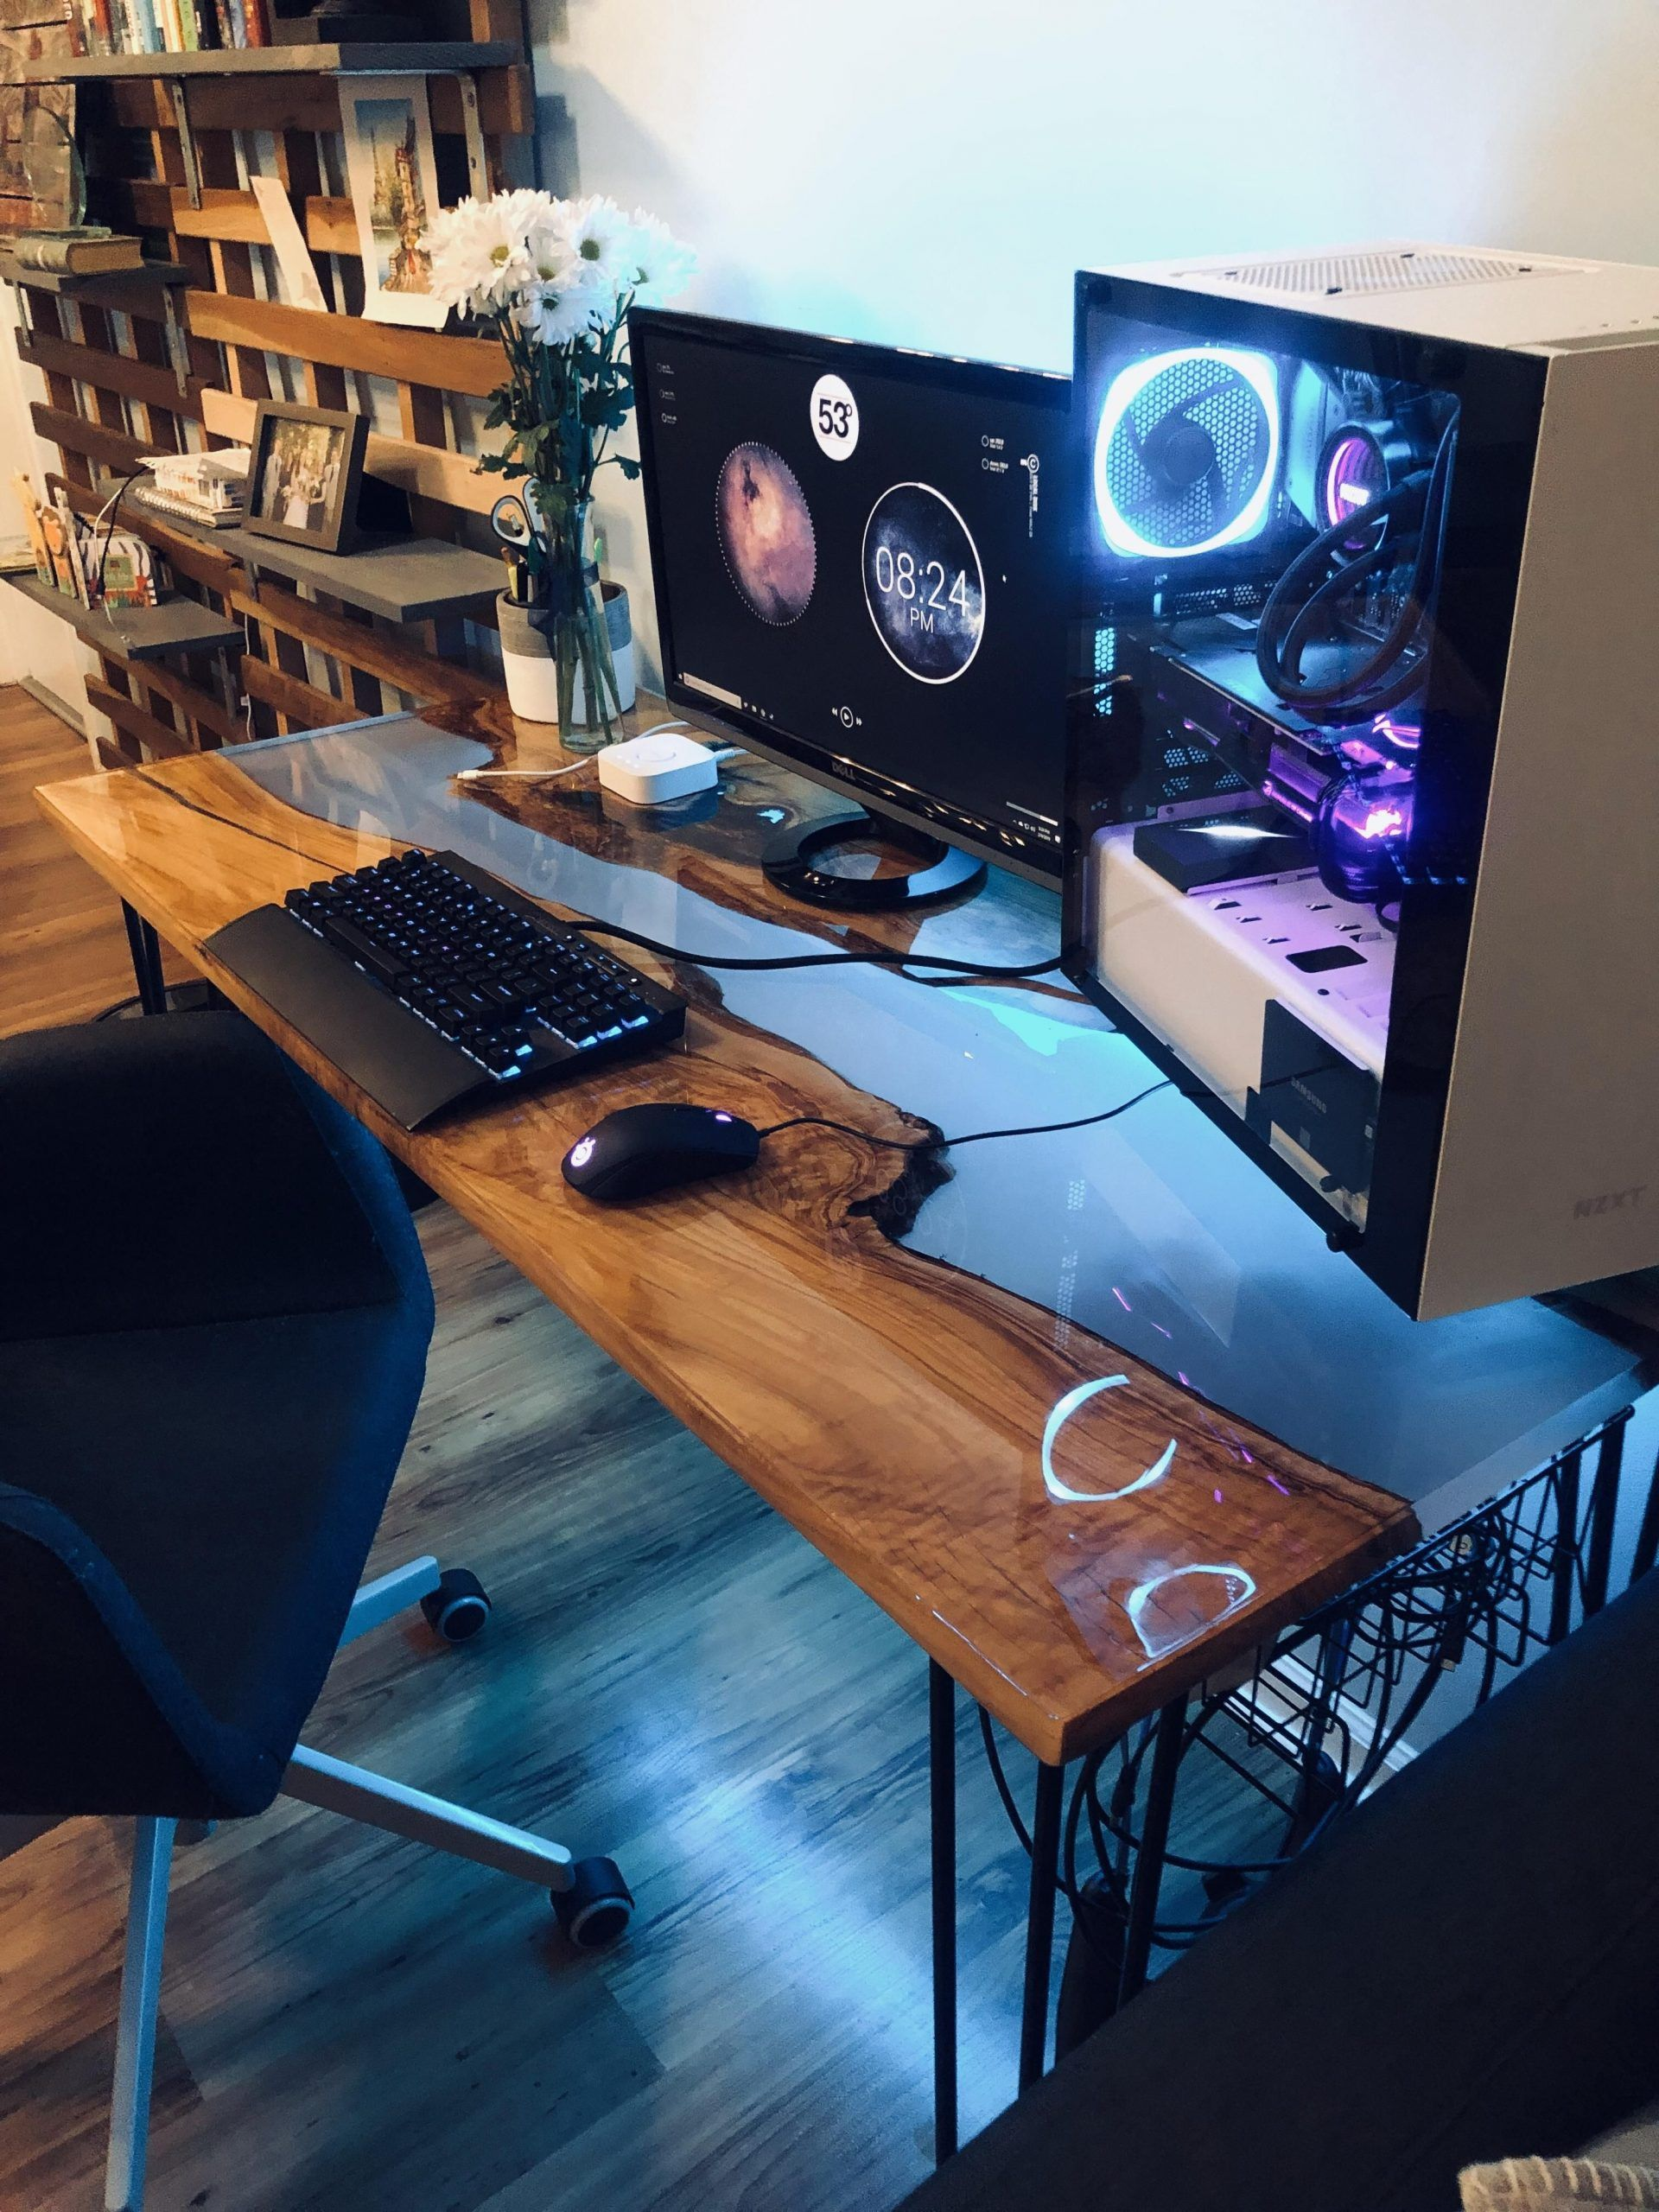 My New River Table Desk Build In 2020 Diy Computer Desk Custom Gaming Desk Gaming Computer Desk